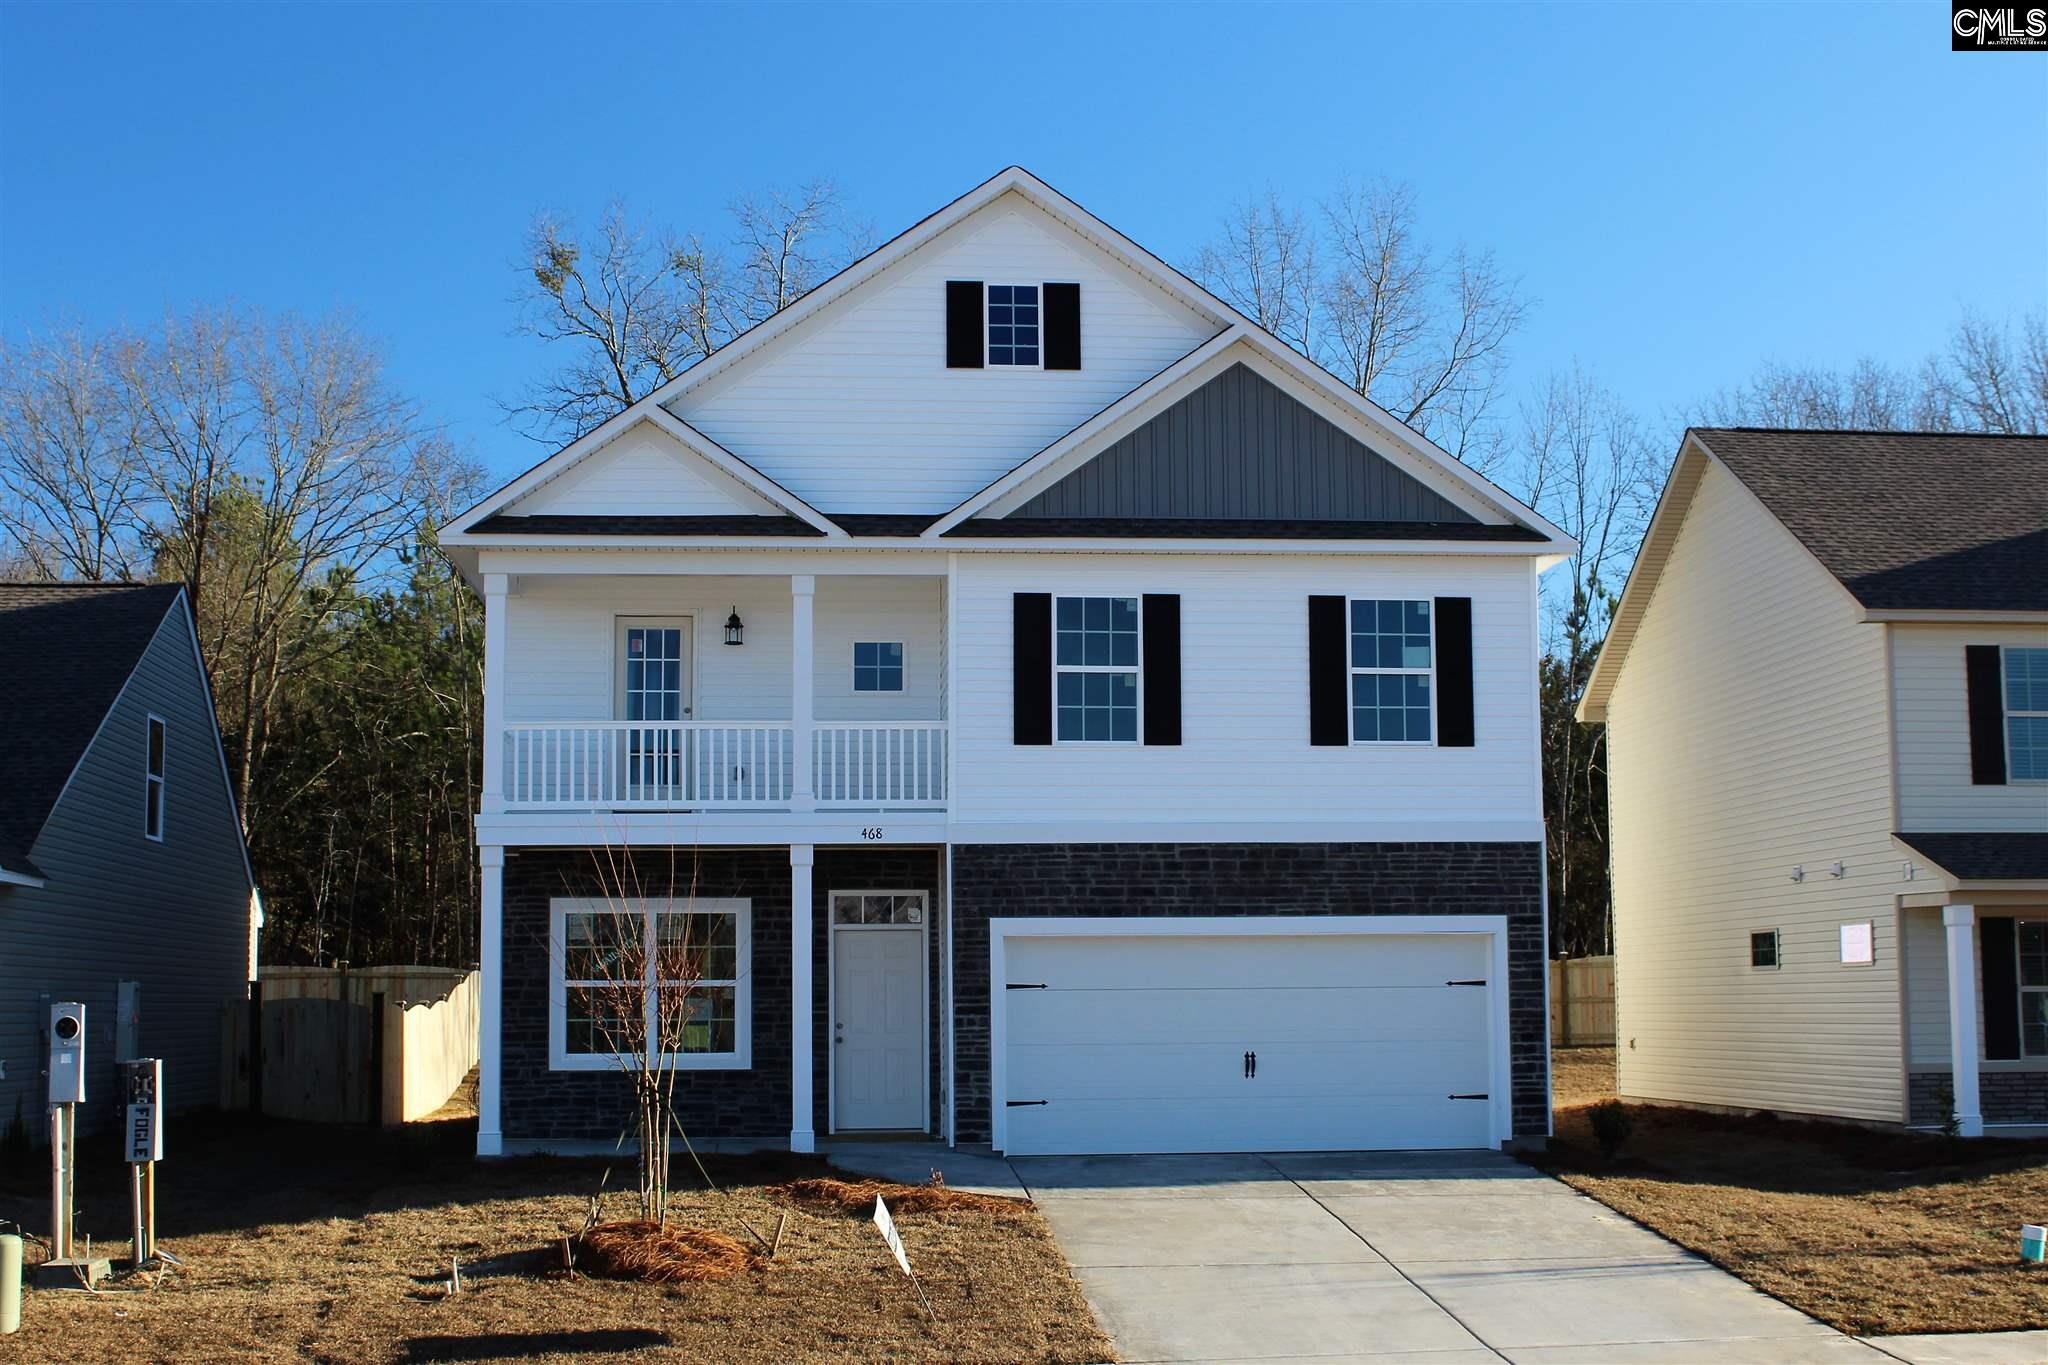 468 Fairford #87 Blythewood, SC 29016